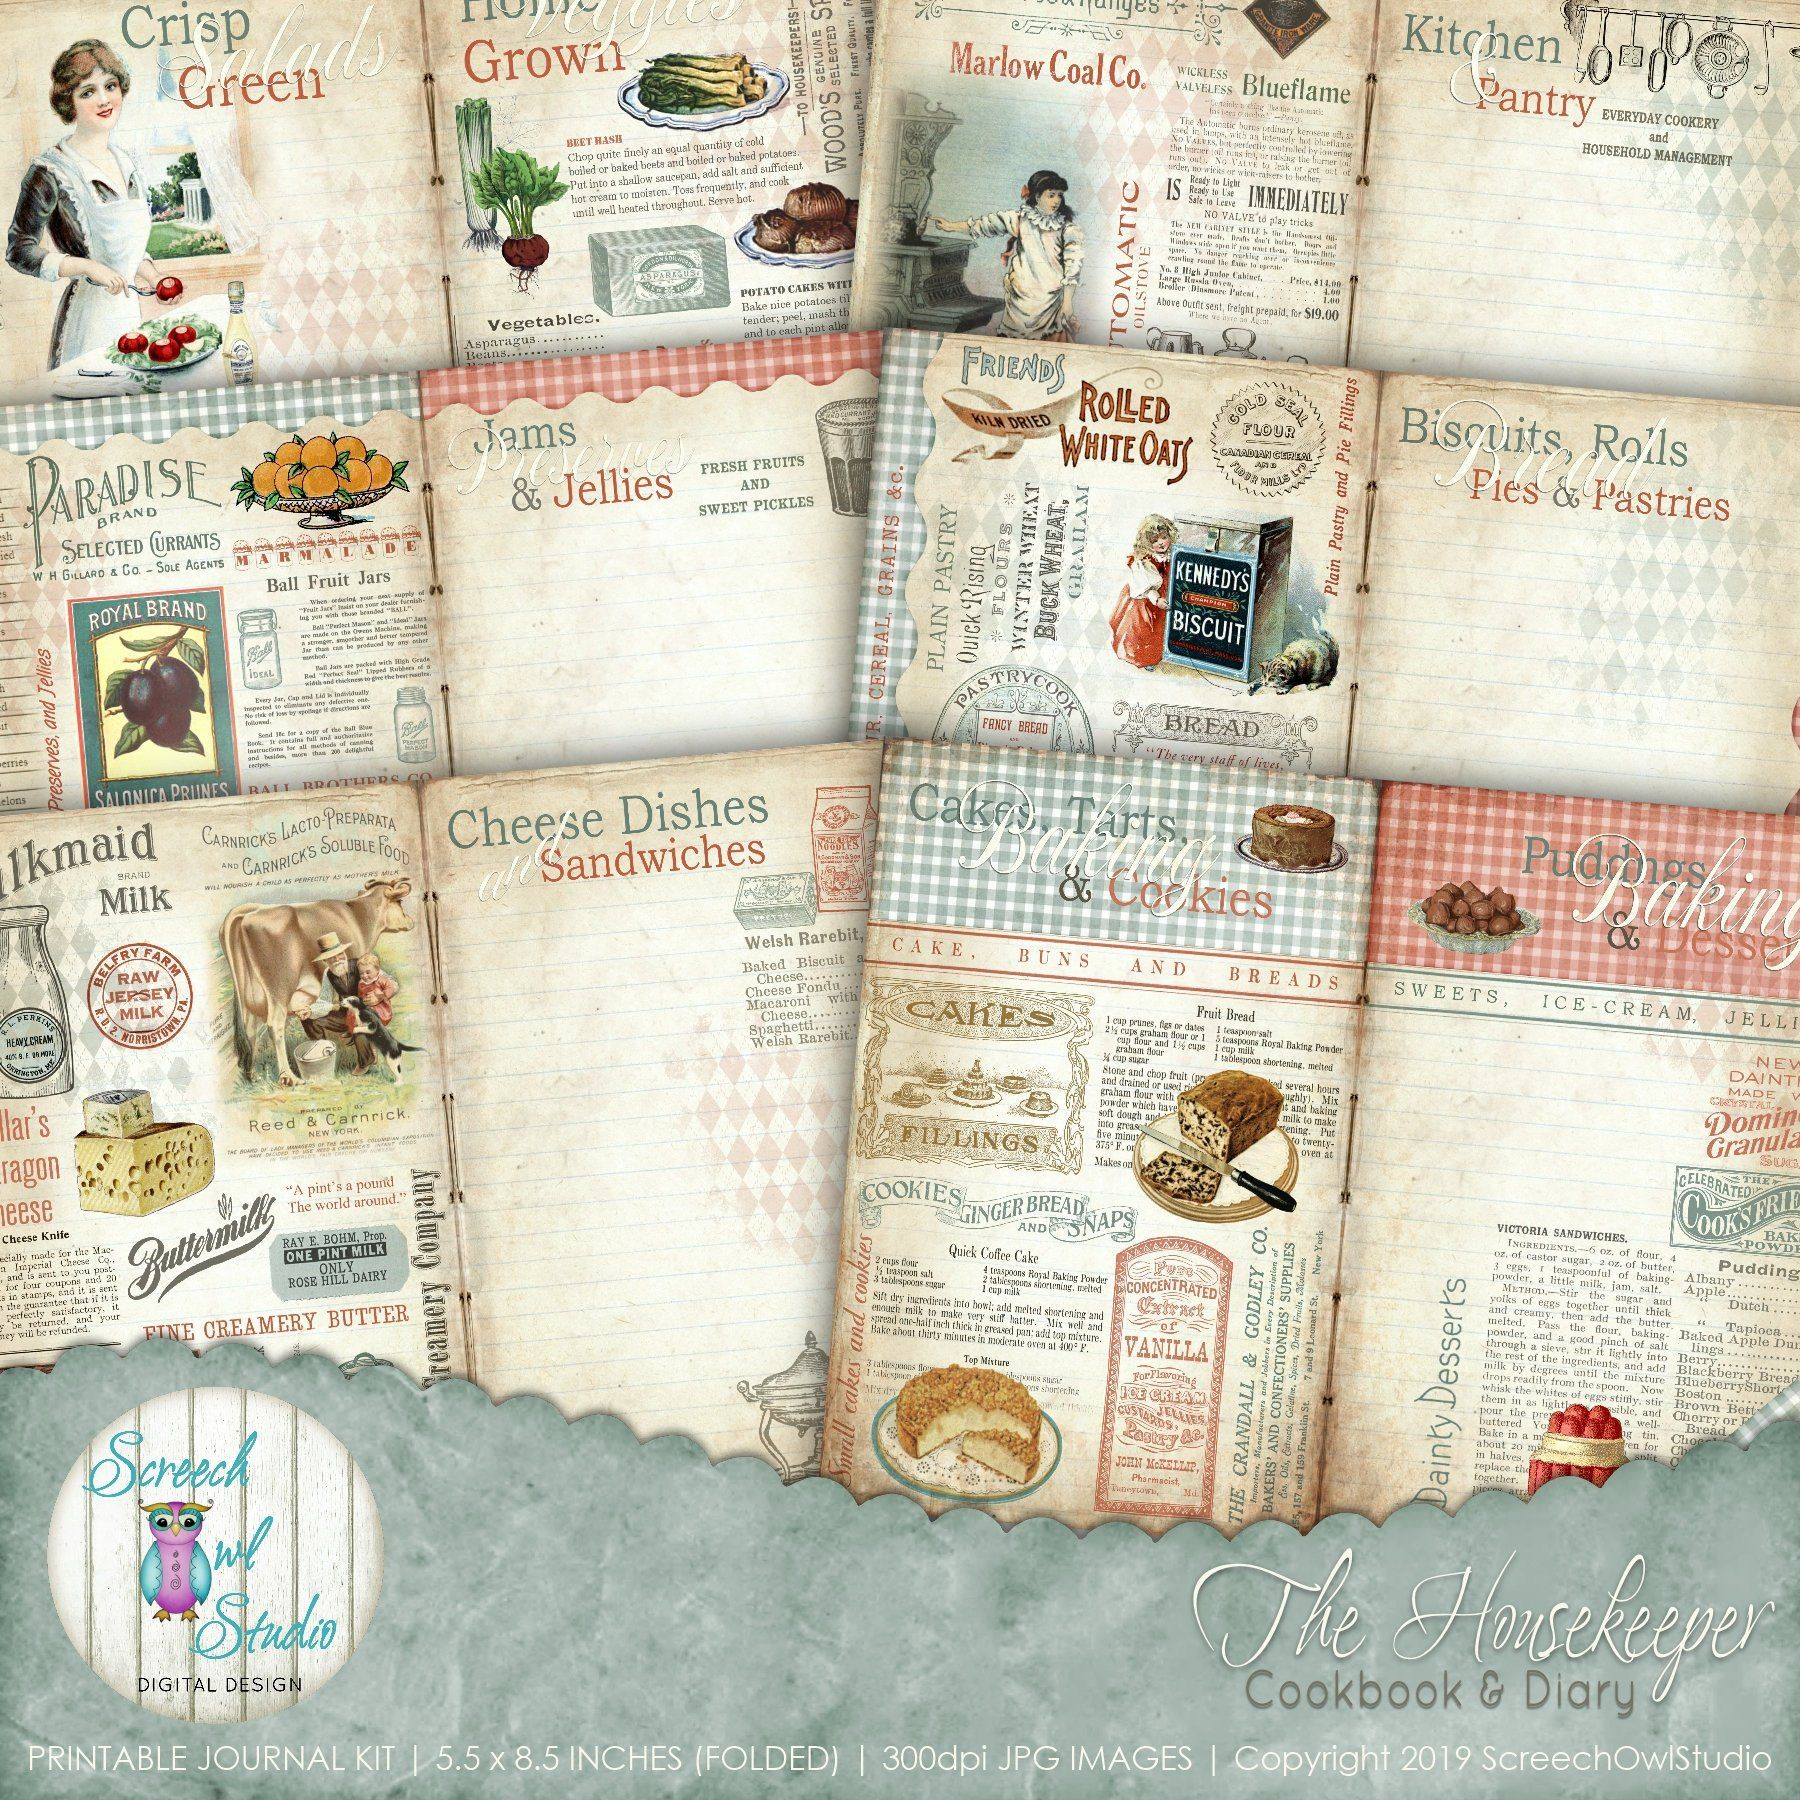 Digital Recipe Journal 5 5 X 8 5 Inch Journal Kit Cookery Book Vintage Recipe Book Recipe Cards Paper Craft Supplies The Housekeeper All Things Printable Food Journal Paper Craft Supplies Cookery Books